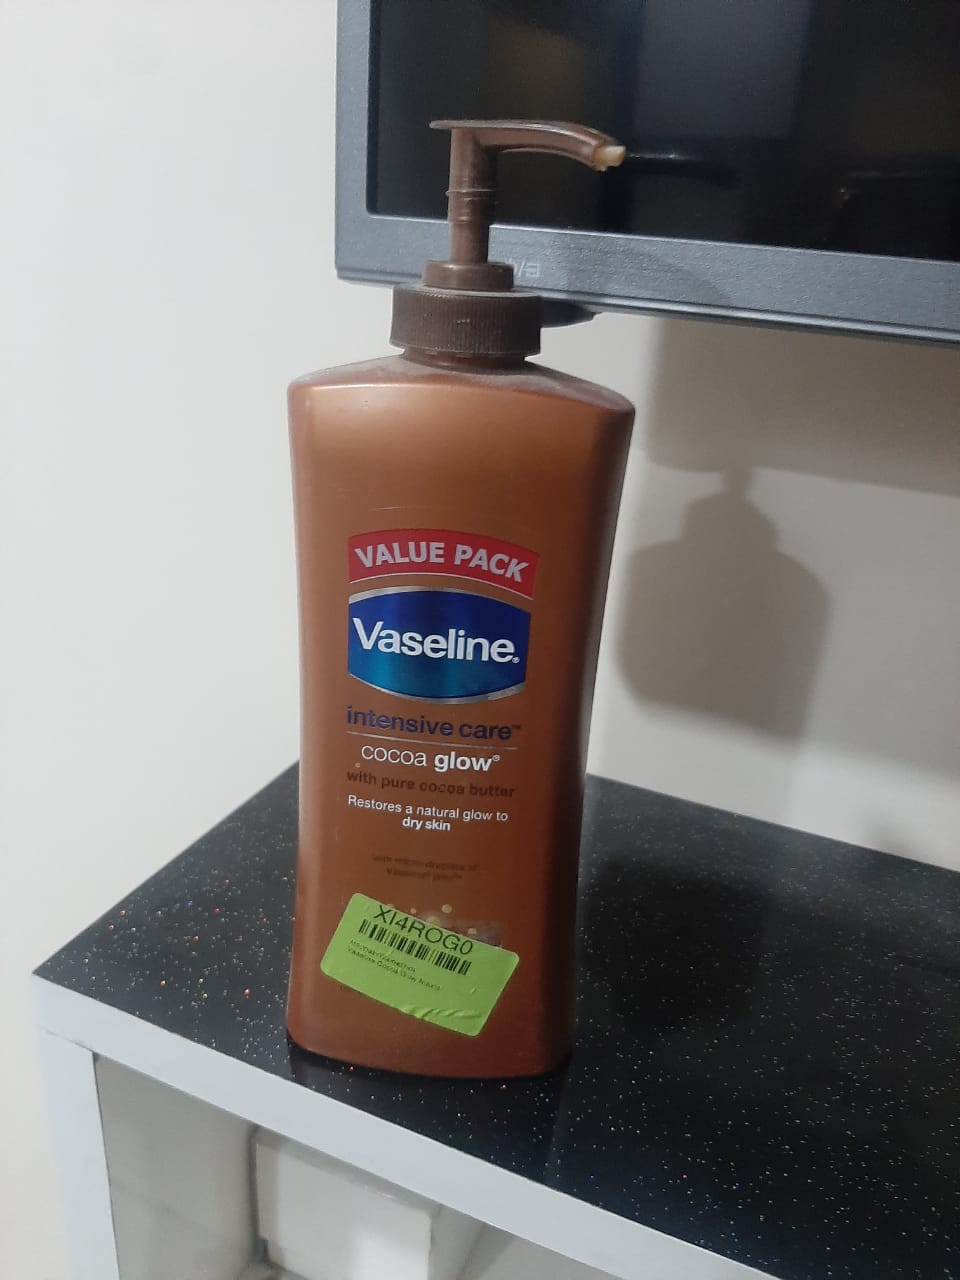 Vaseline Intensive Care Cocoa Glow Body Lotion-Cocoa glow body lotion-By garimabagga